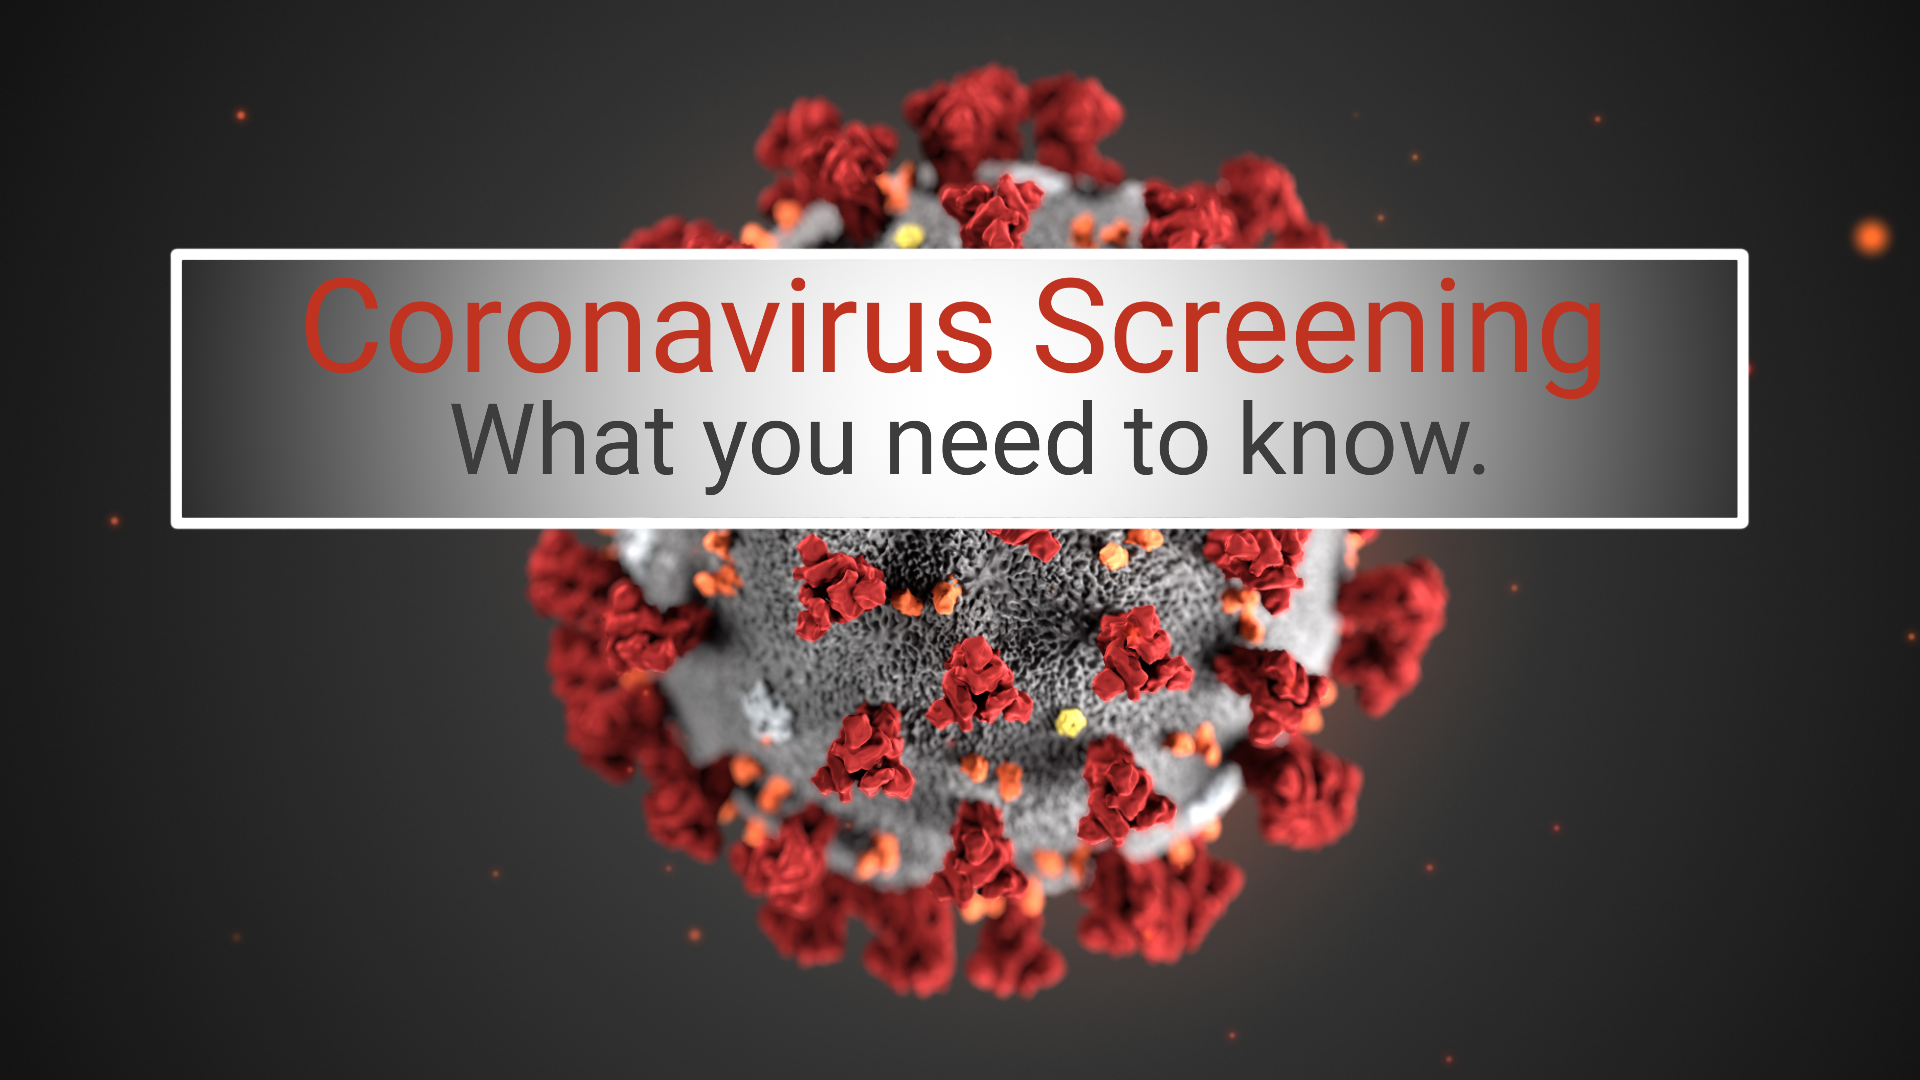 This banner image shows a virus and describes the article